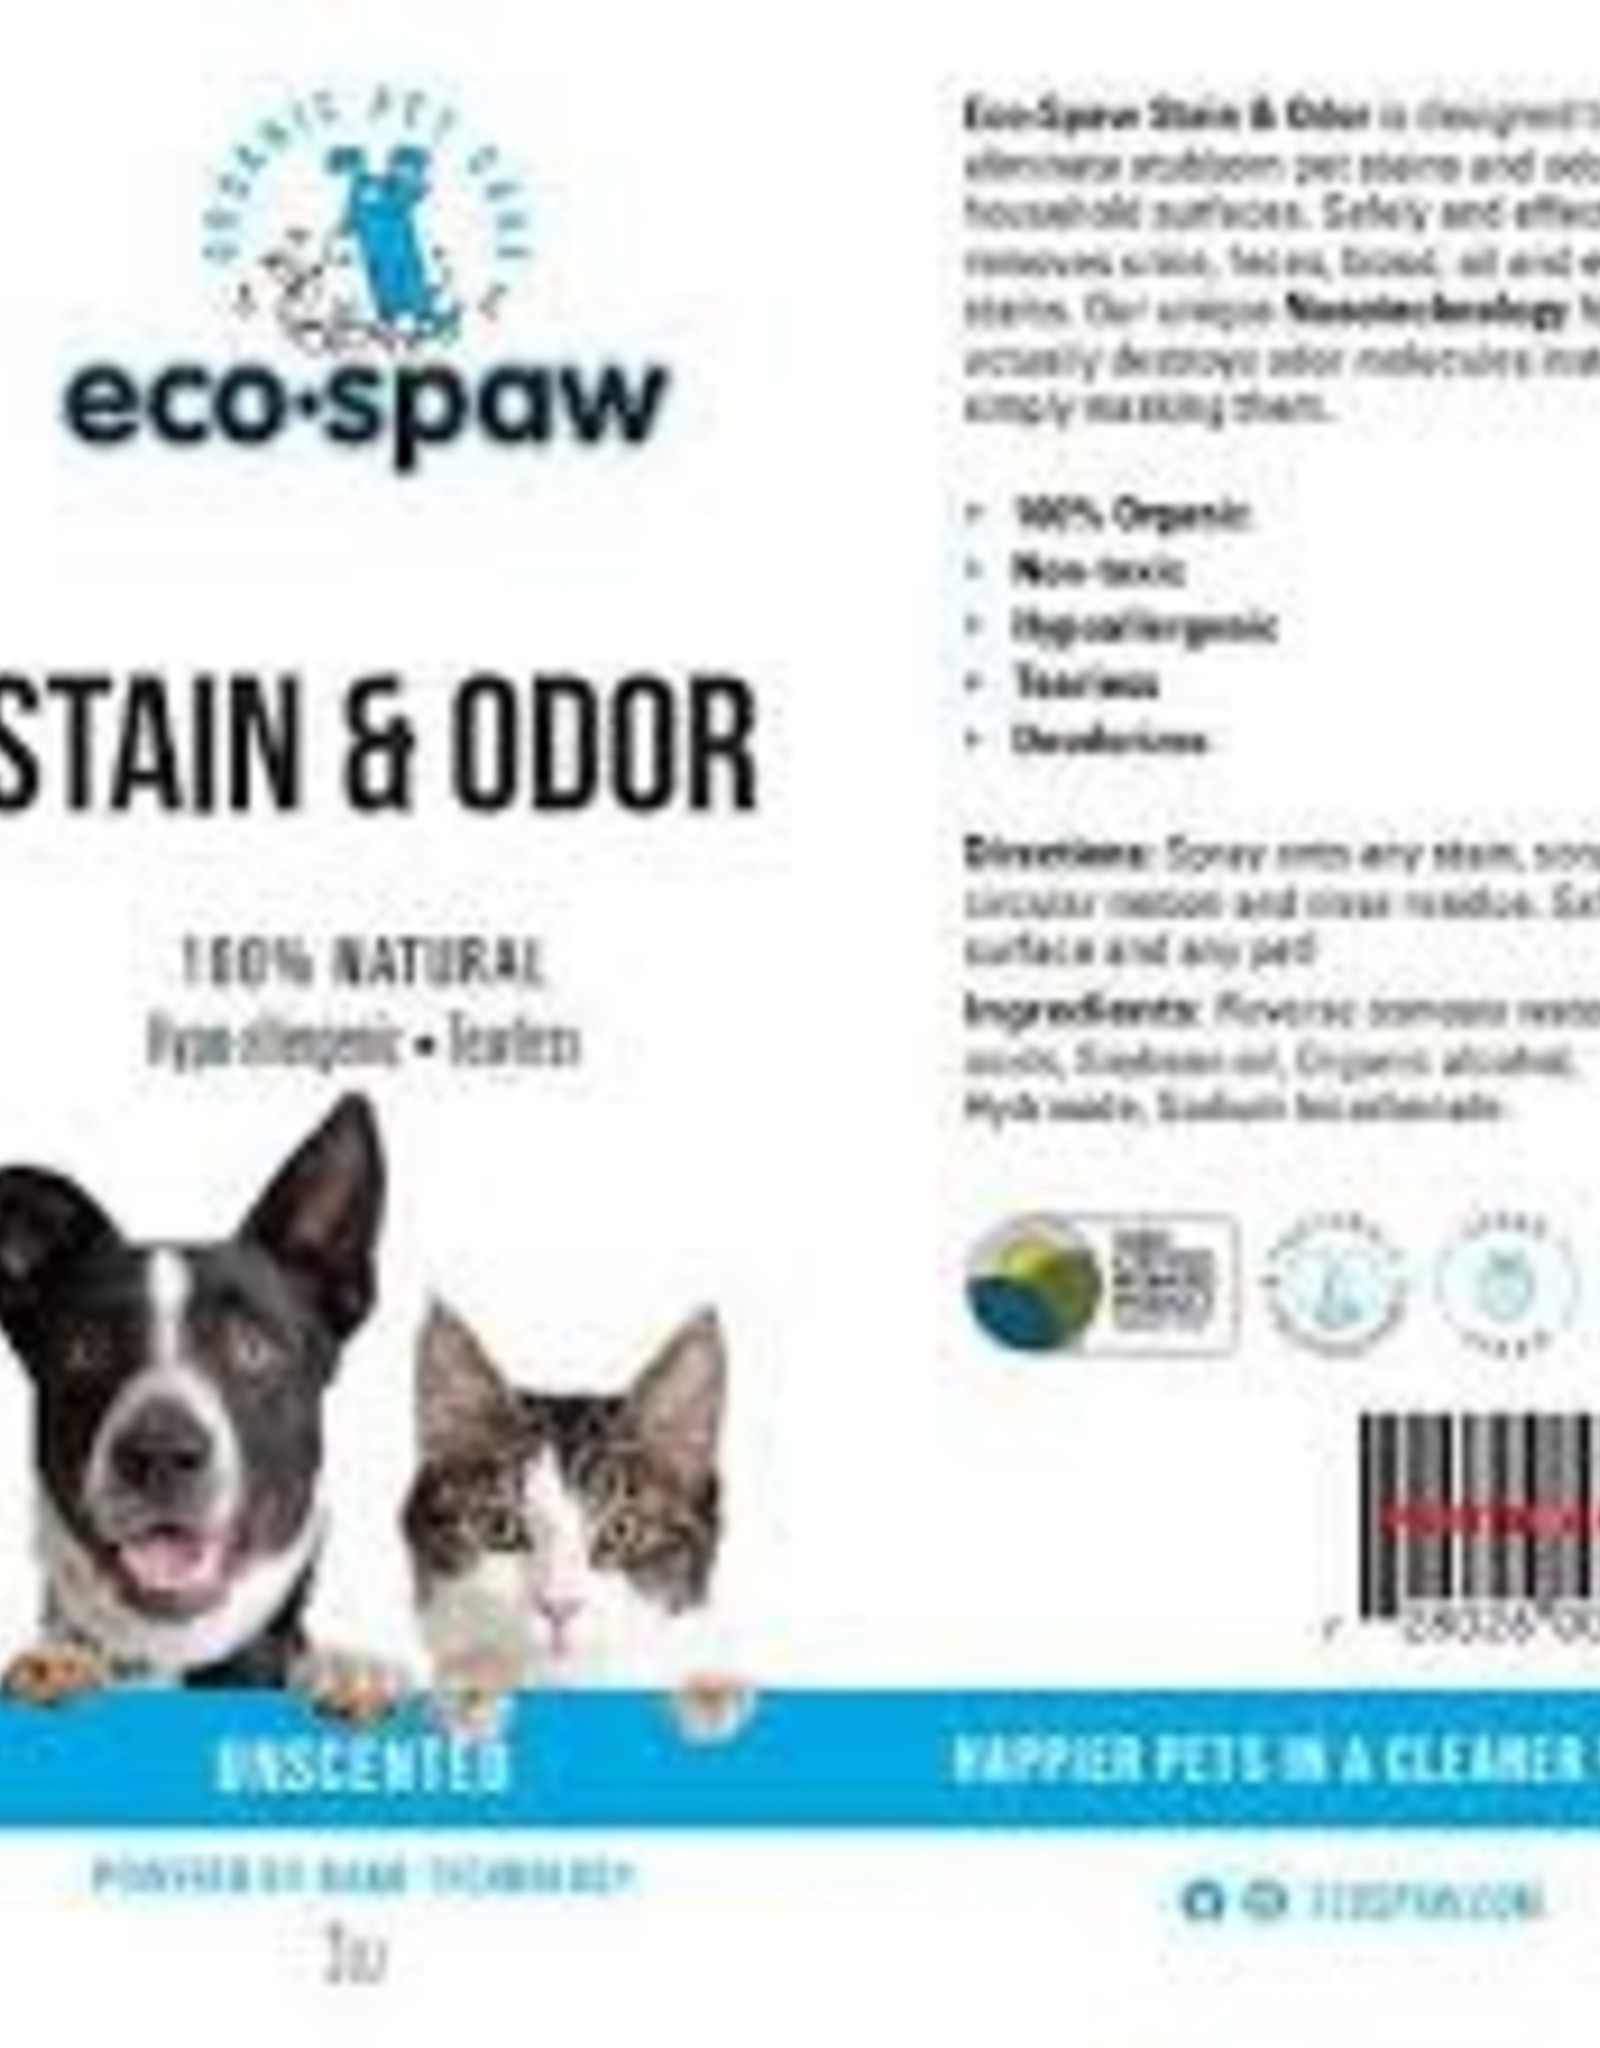 Eco Spaw Eco Spaw Stain and Odor 16 oz Unscented